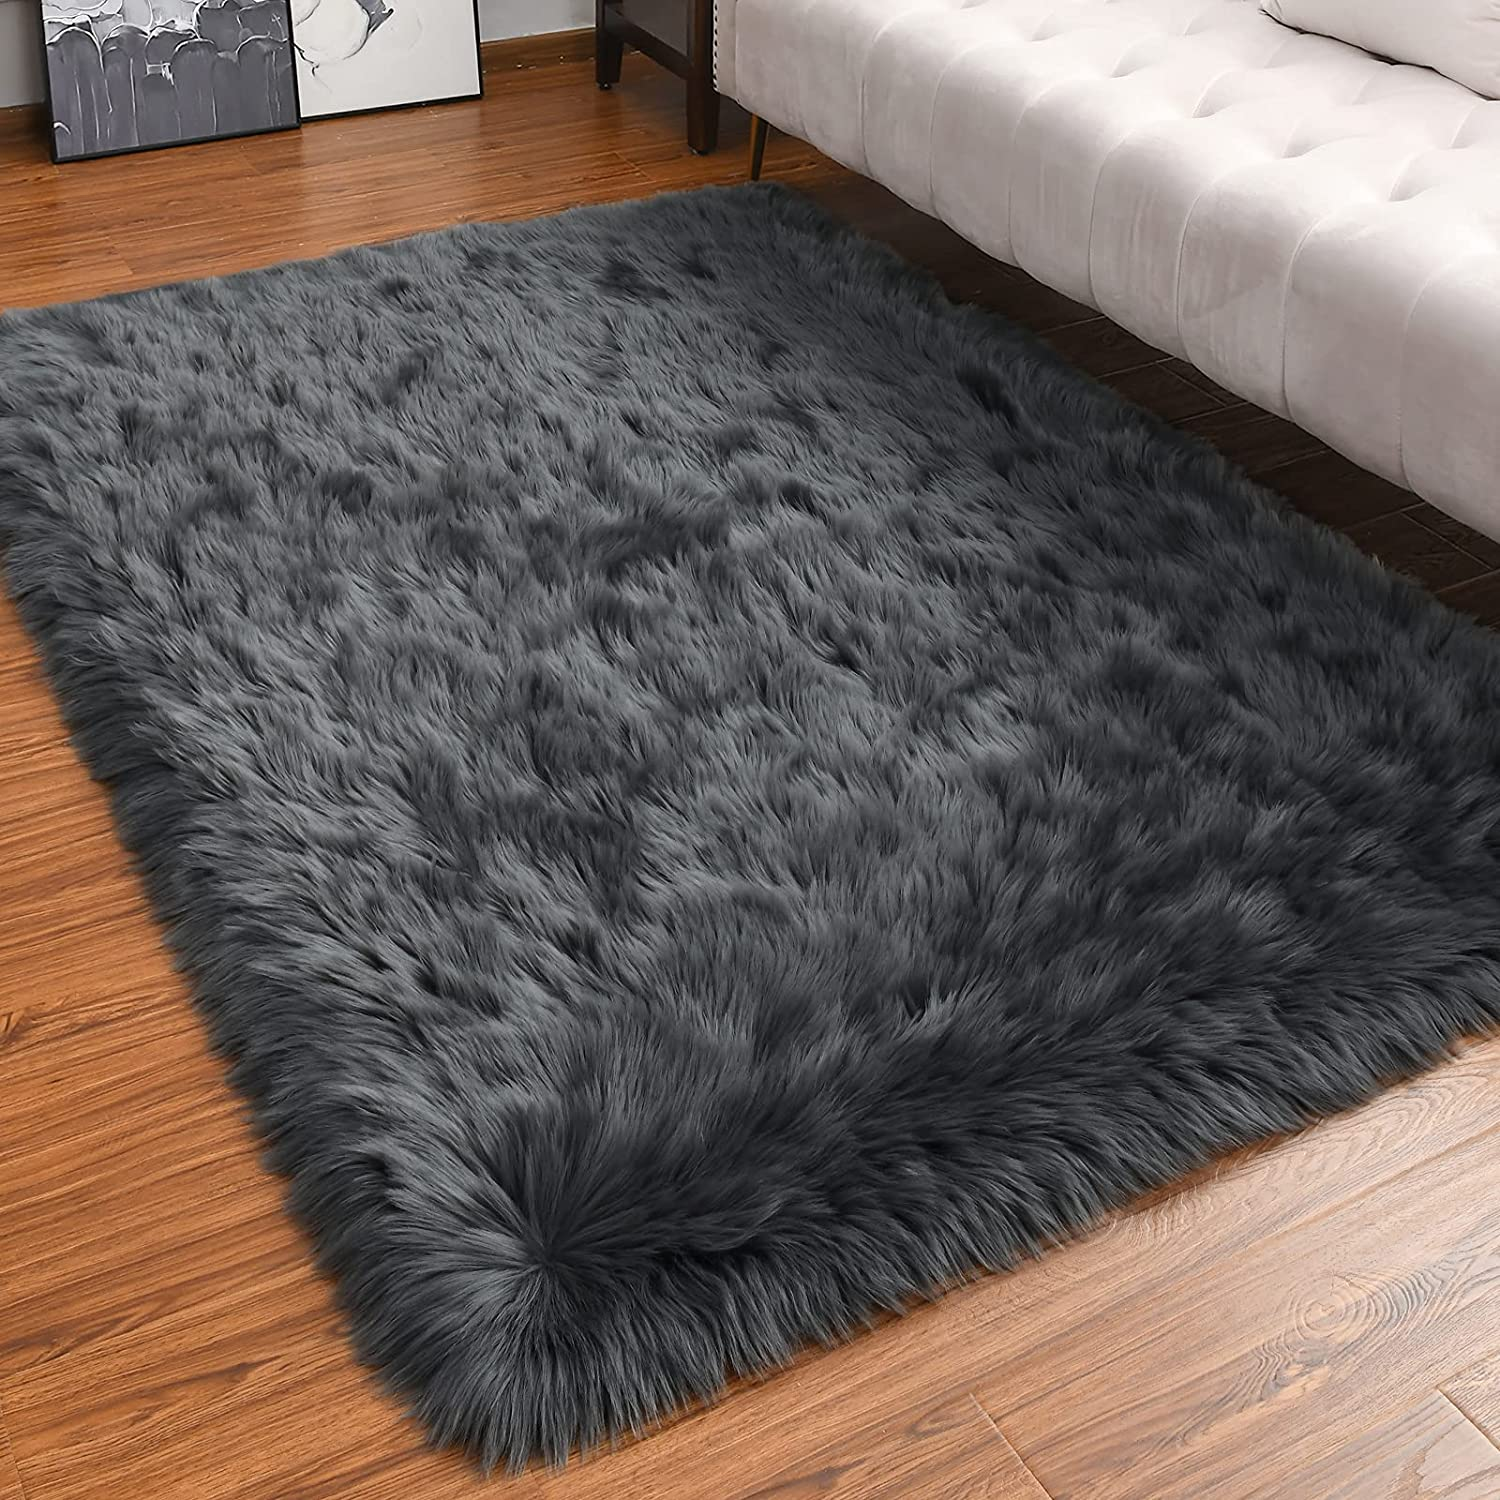 LOCHAS Ultra Soft Fluffy Rugs Faux Be super welcome for Sheepskin Rug Free shipping anywhere in the nation Area Fur